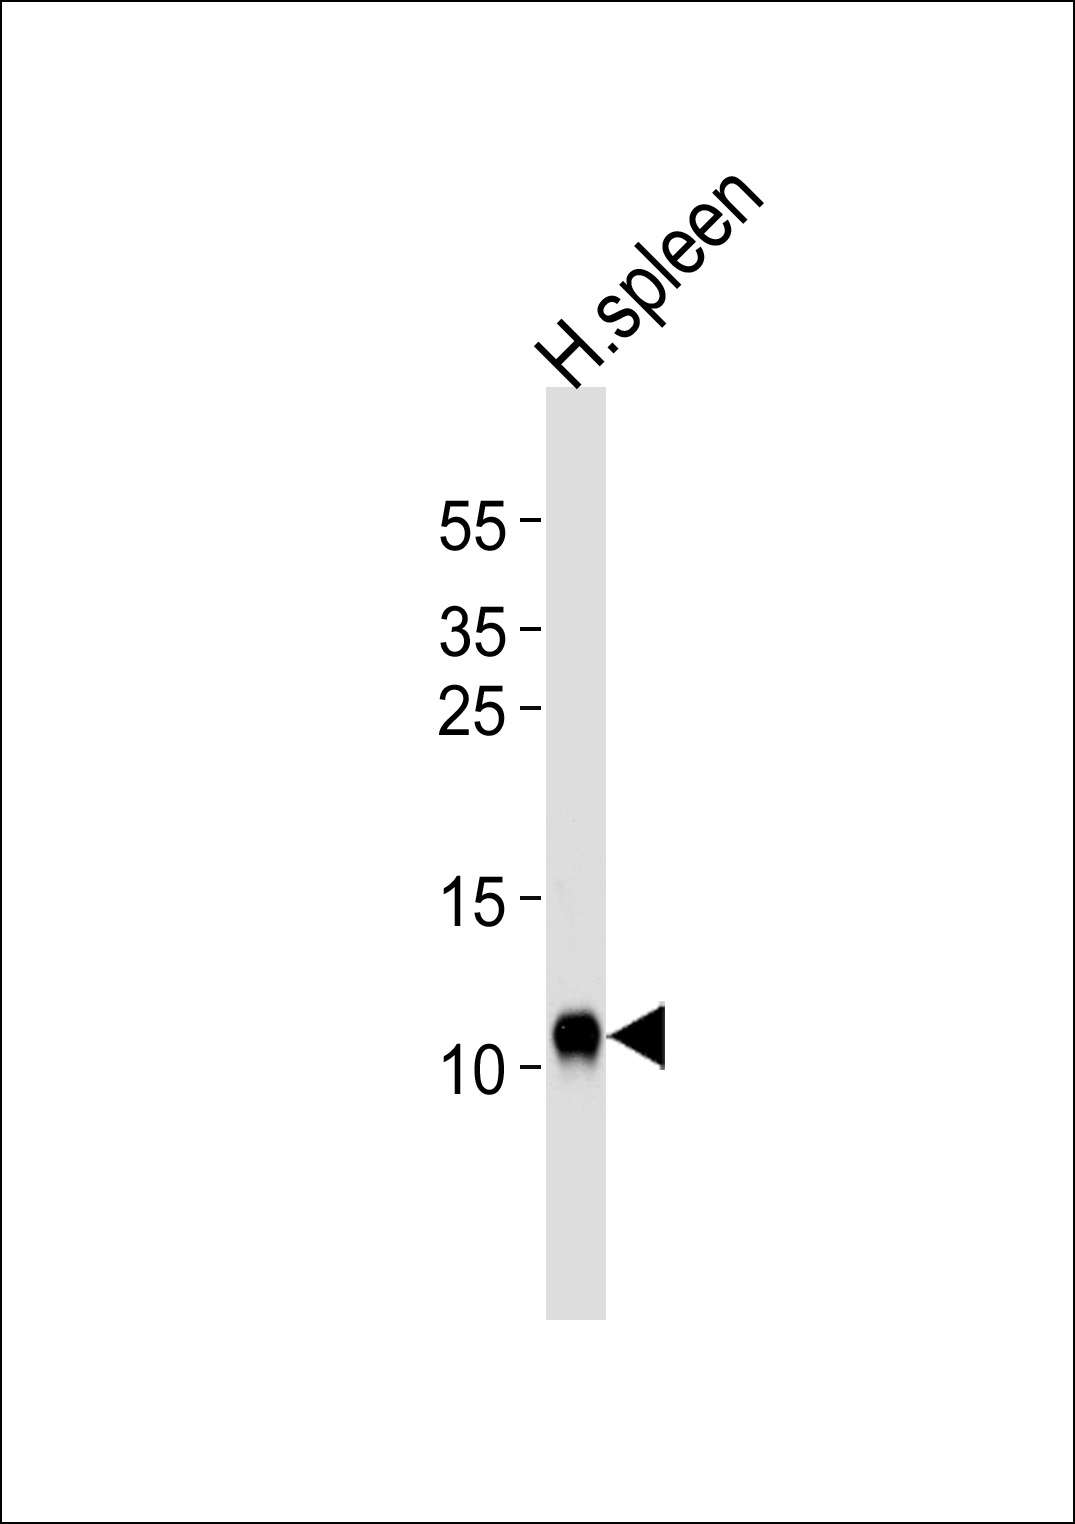 Western blot of lysate from human spleen tissue lysate, using FCER1G Antibody. Antibody was diluted at 1:1000 at each lane. A goat anti-rabbit IgG H&L (HRP) at 1:5000 dilution was used as the secondary antibody. Lysate at 35ug per lane.